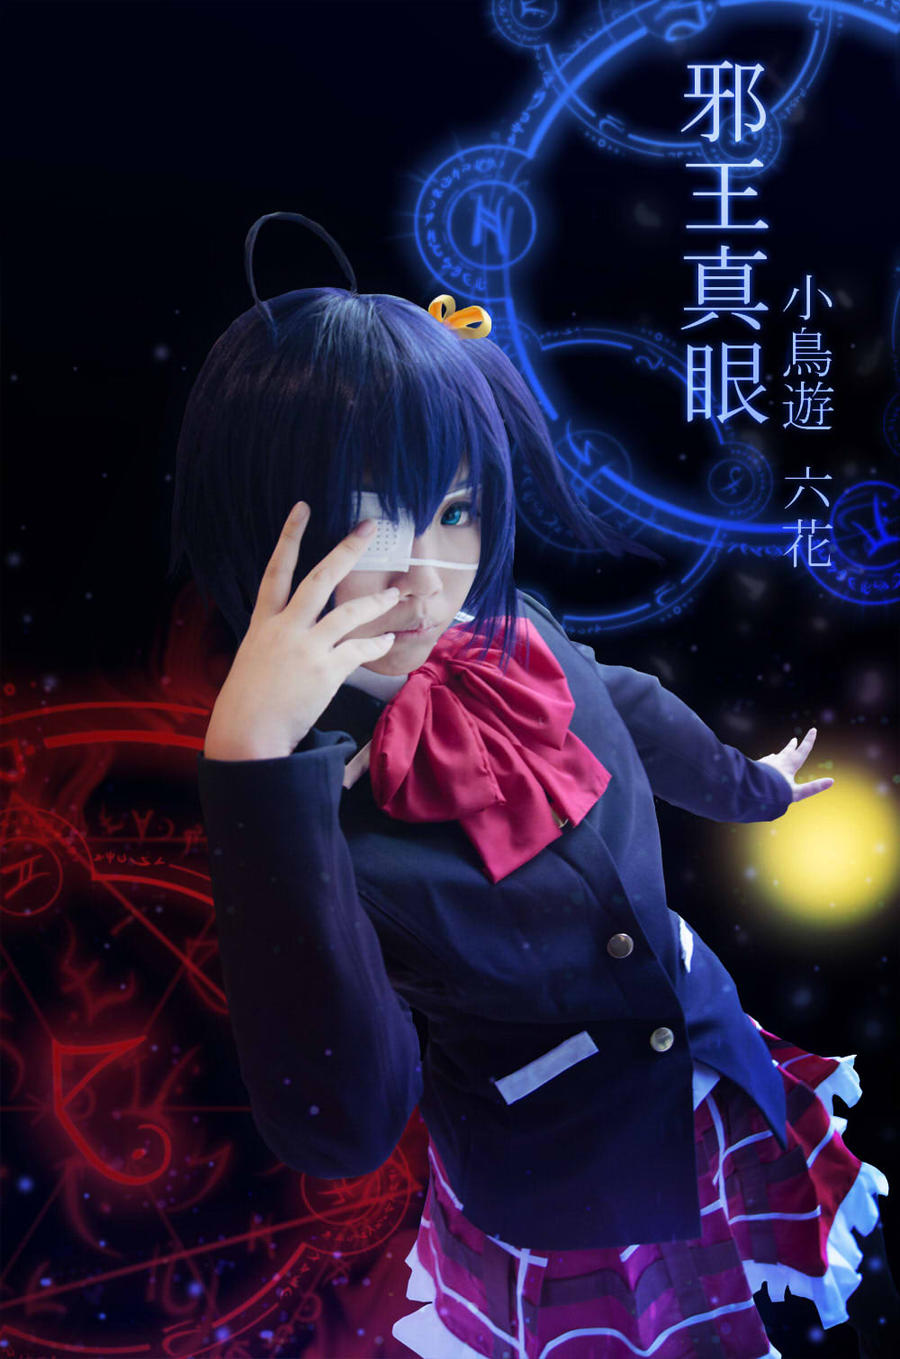 Takanashi rikka - Devilish Truth Stare by Ika-xin